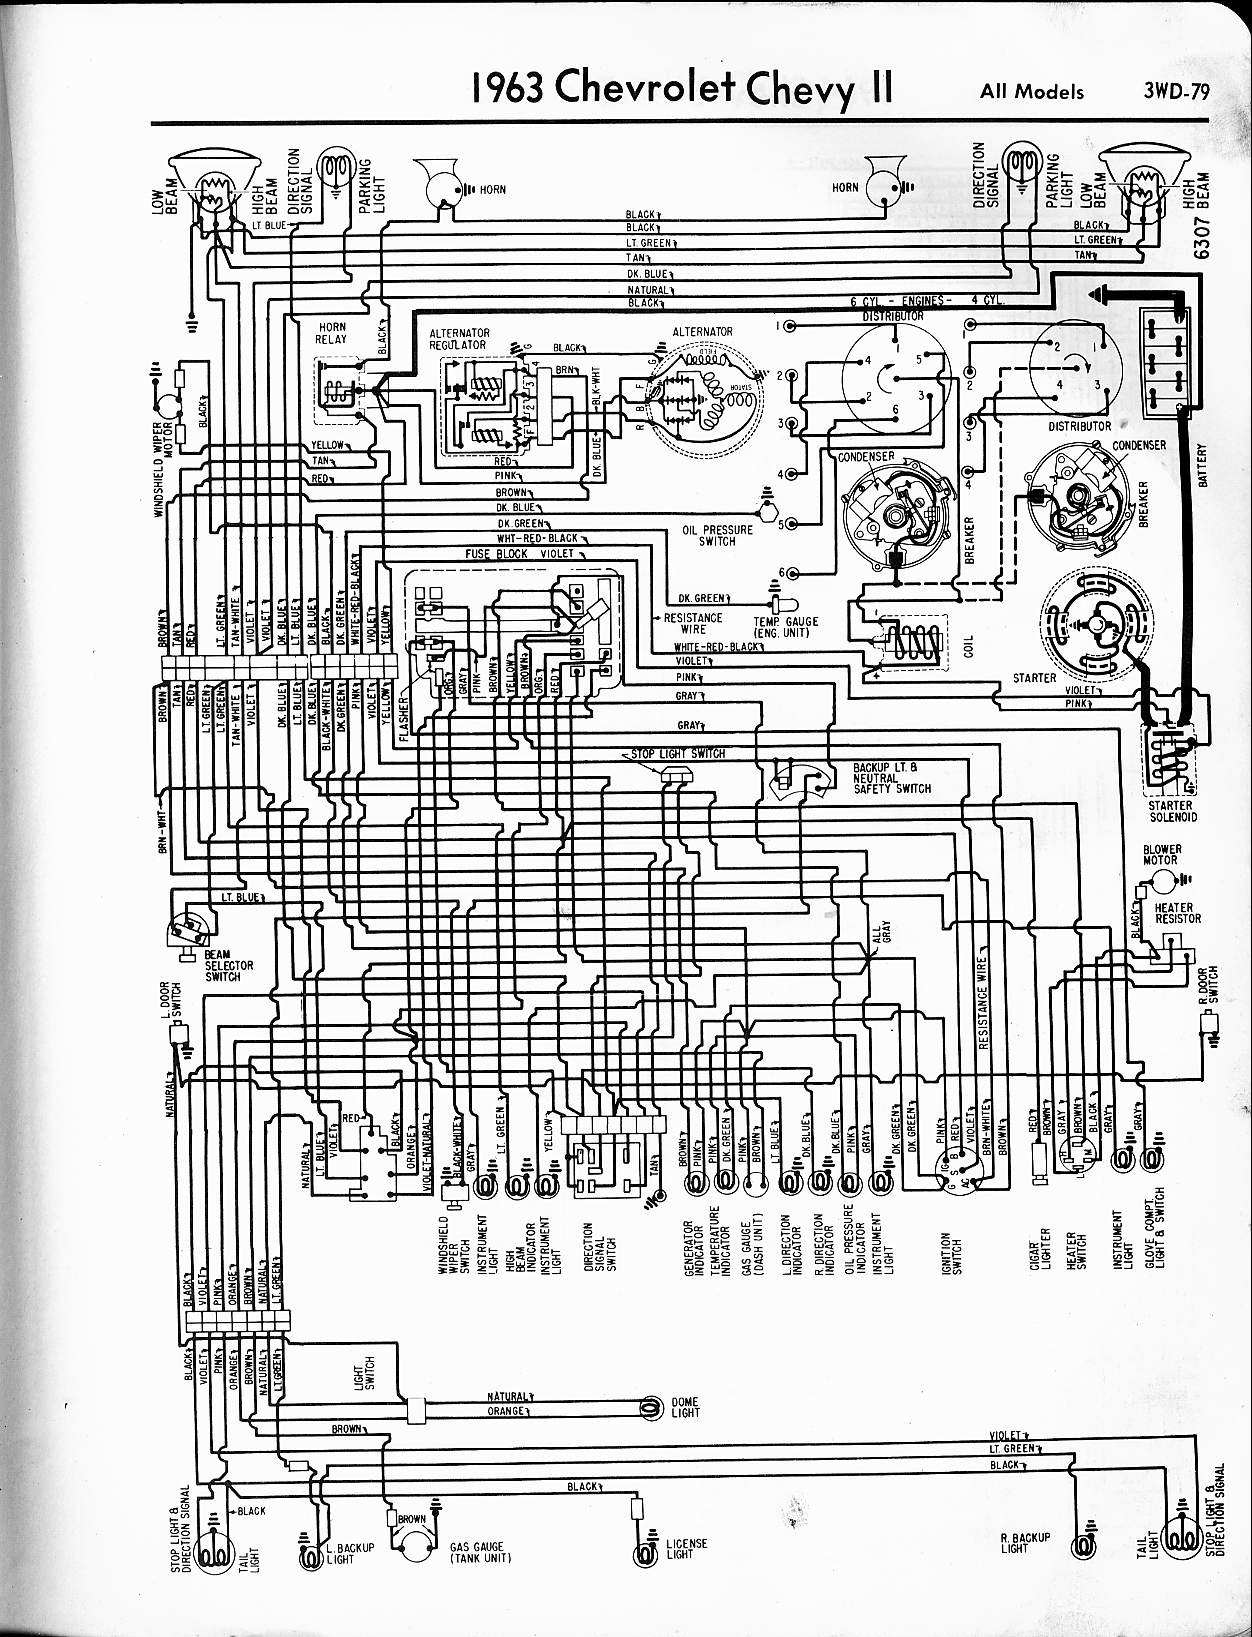 MWireChev63_3WD 079 57 65 chevy wiring diagrams 1970 chevelle dash wiring diagram at aneh.co